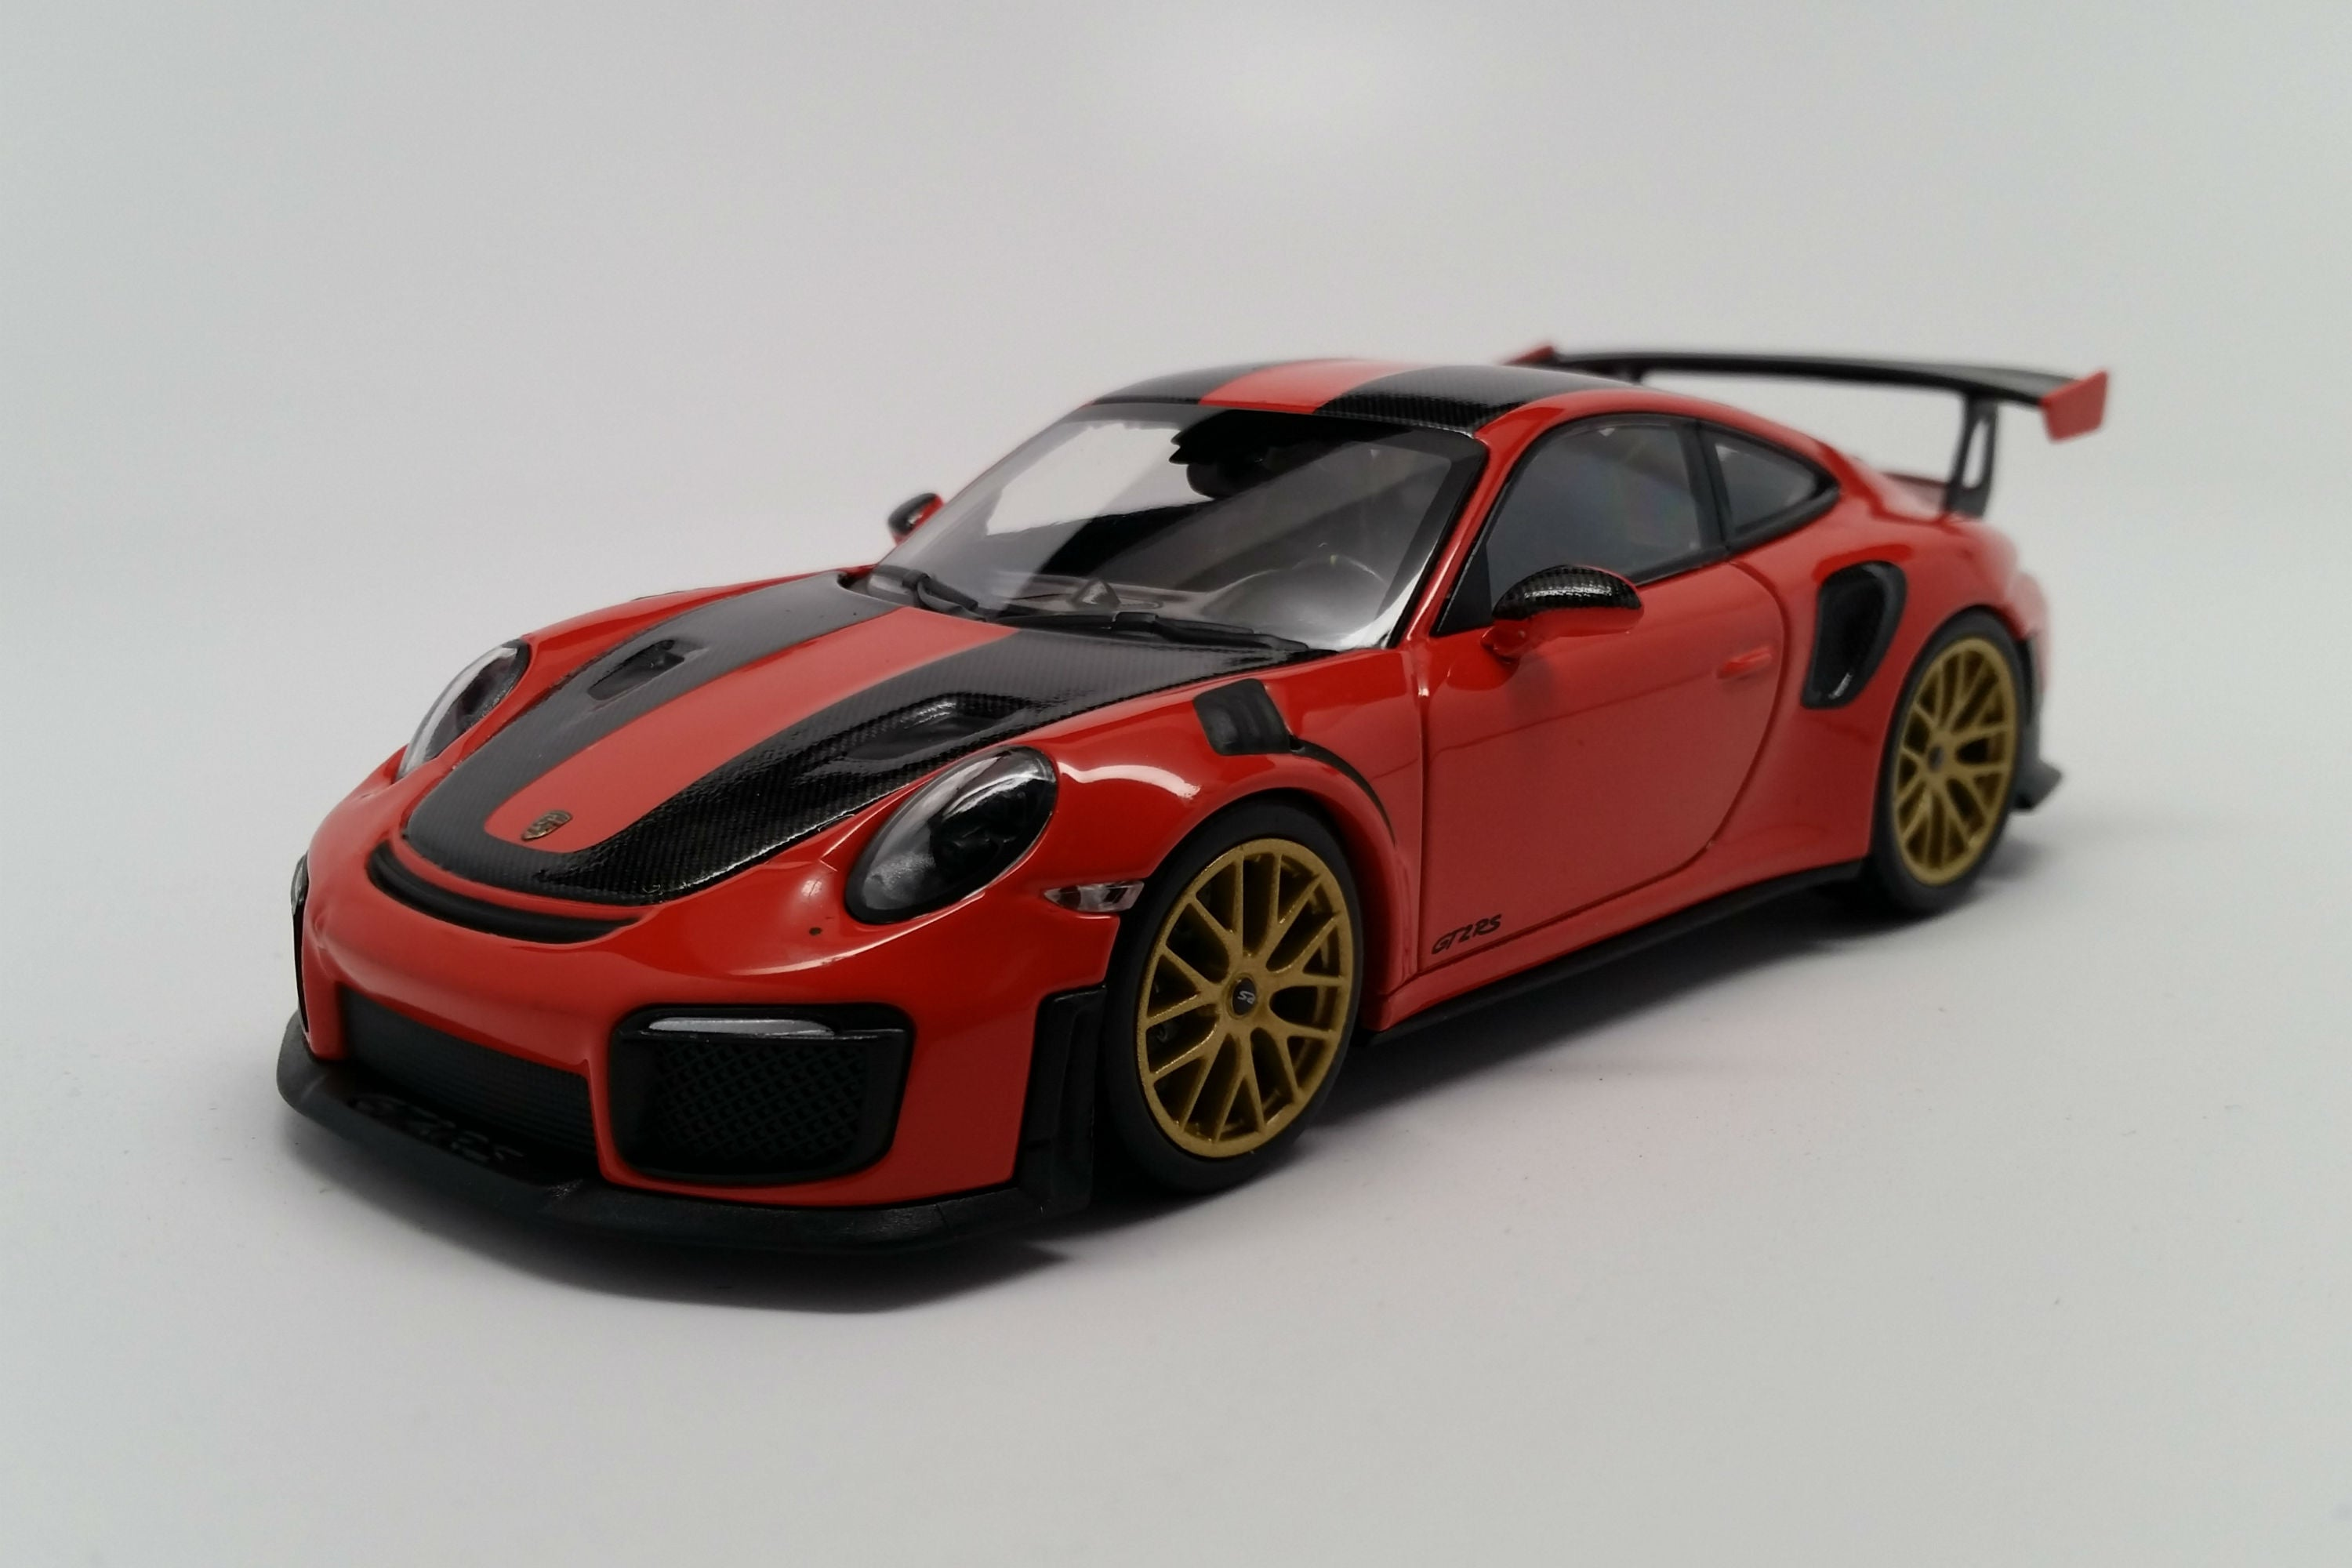 Porsche 911 GT2RS Weissach Package (991.2) | 1:43 Scale Diecast Model Car by Minichamps | Front Quarter